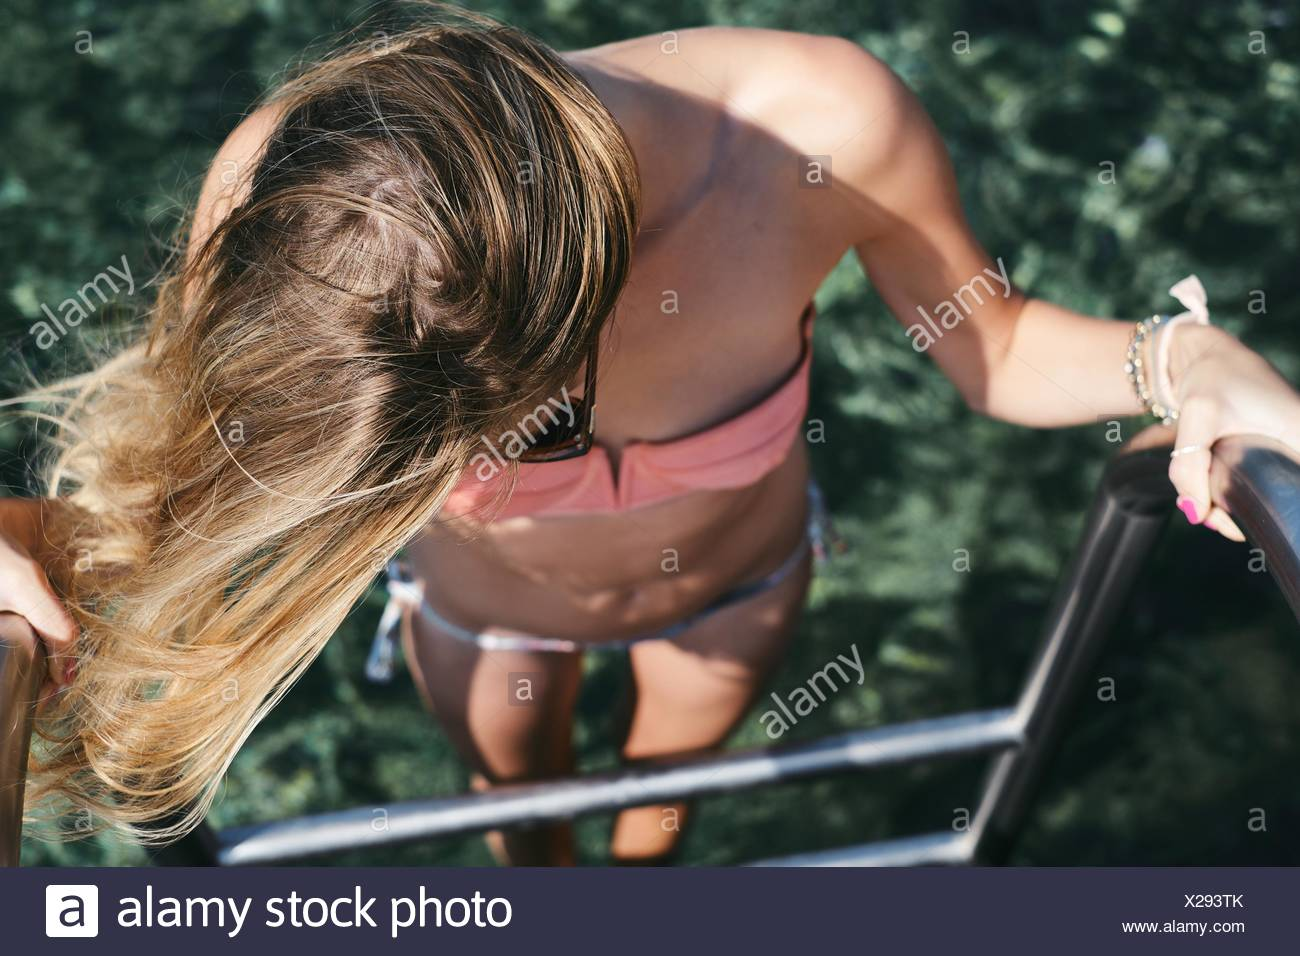 Elevated view of a woman getting into sea - Stock Image